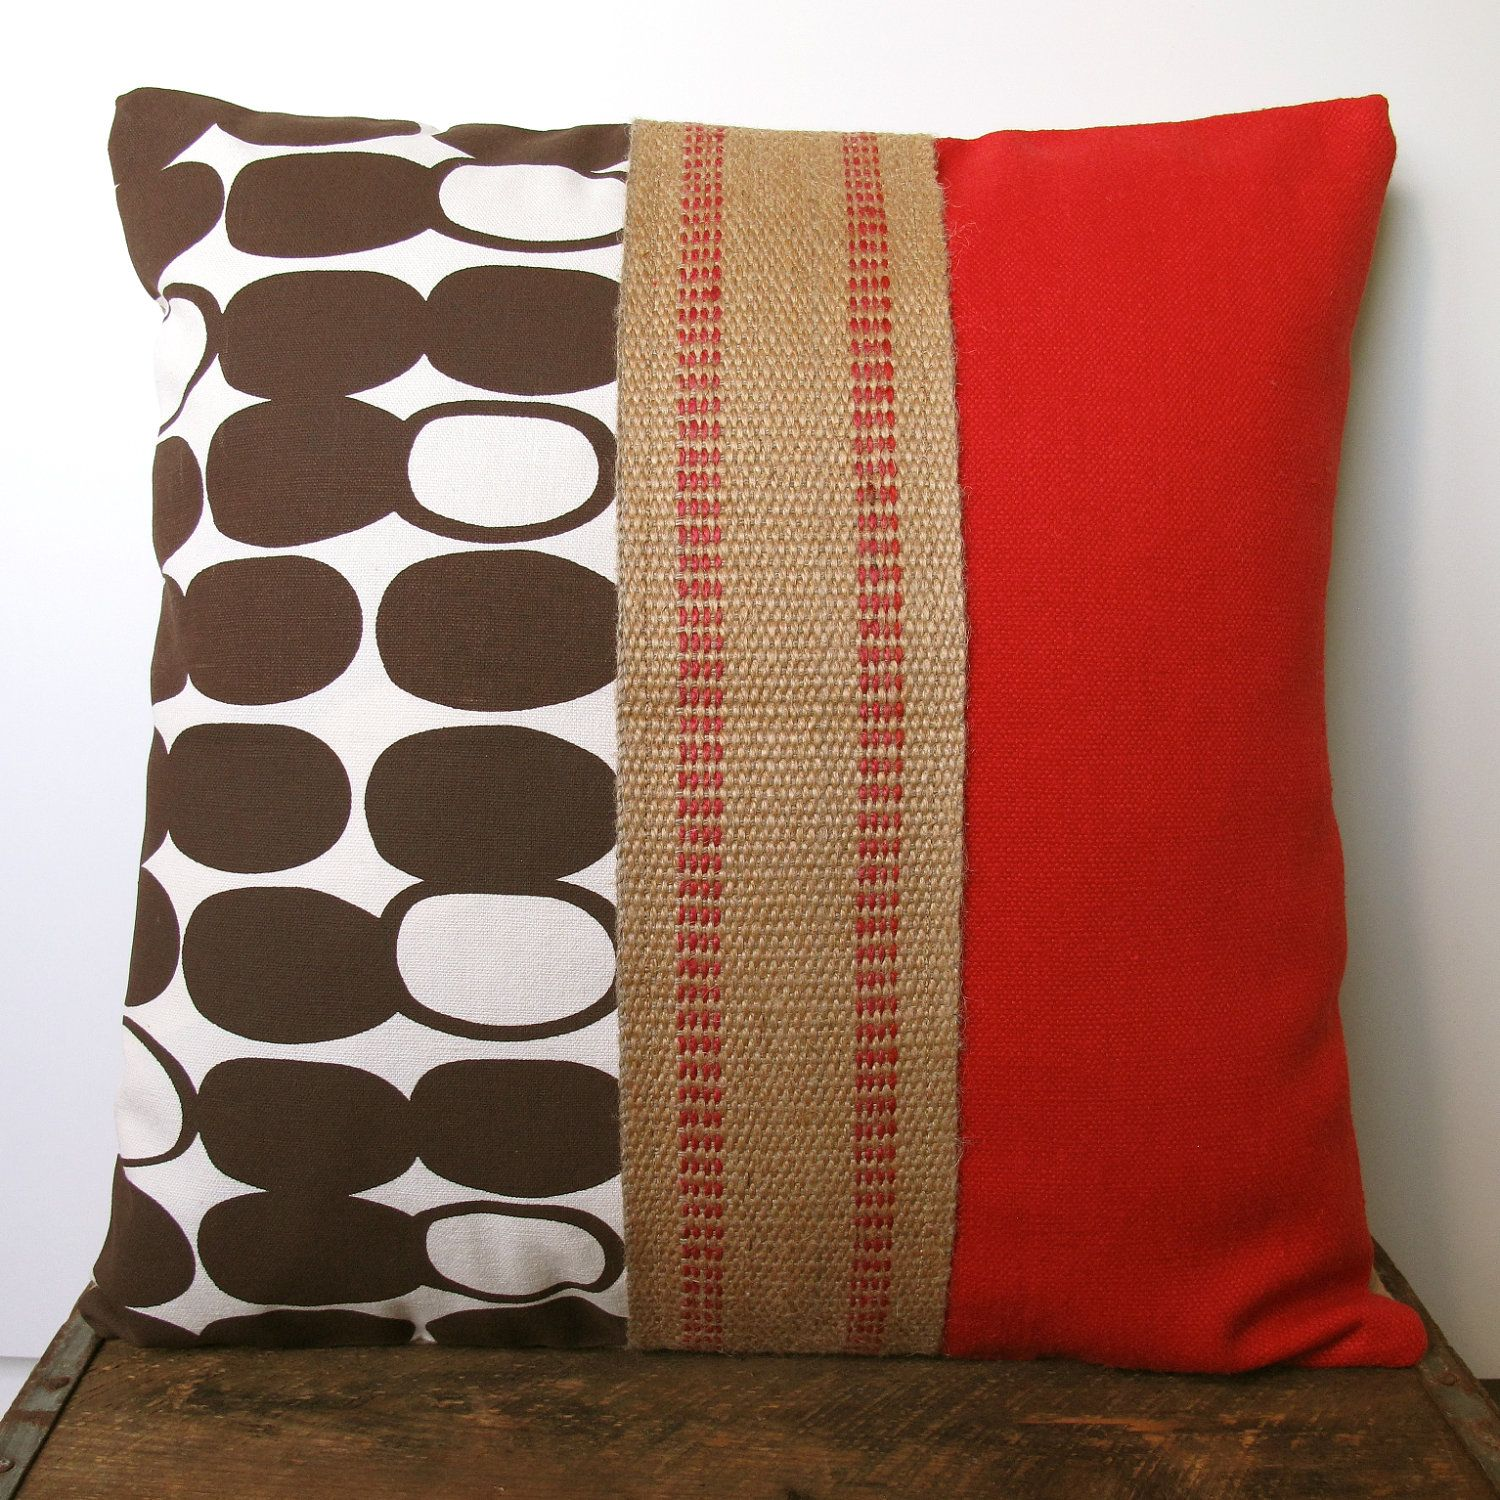 Brown and Red Throw Pillow from Etsy - I could make that.  I have some of that burlap